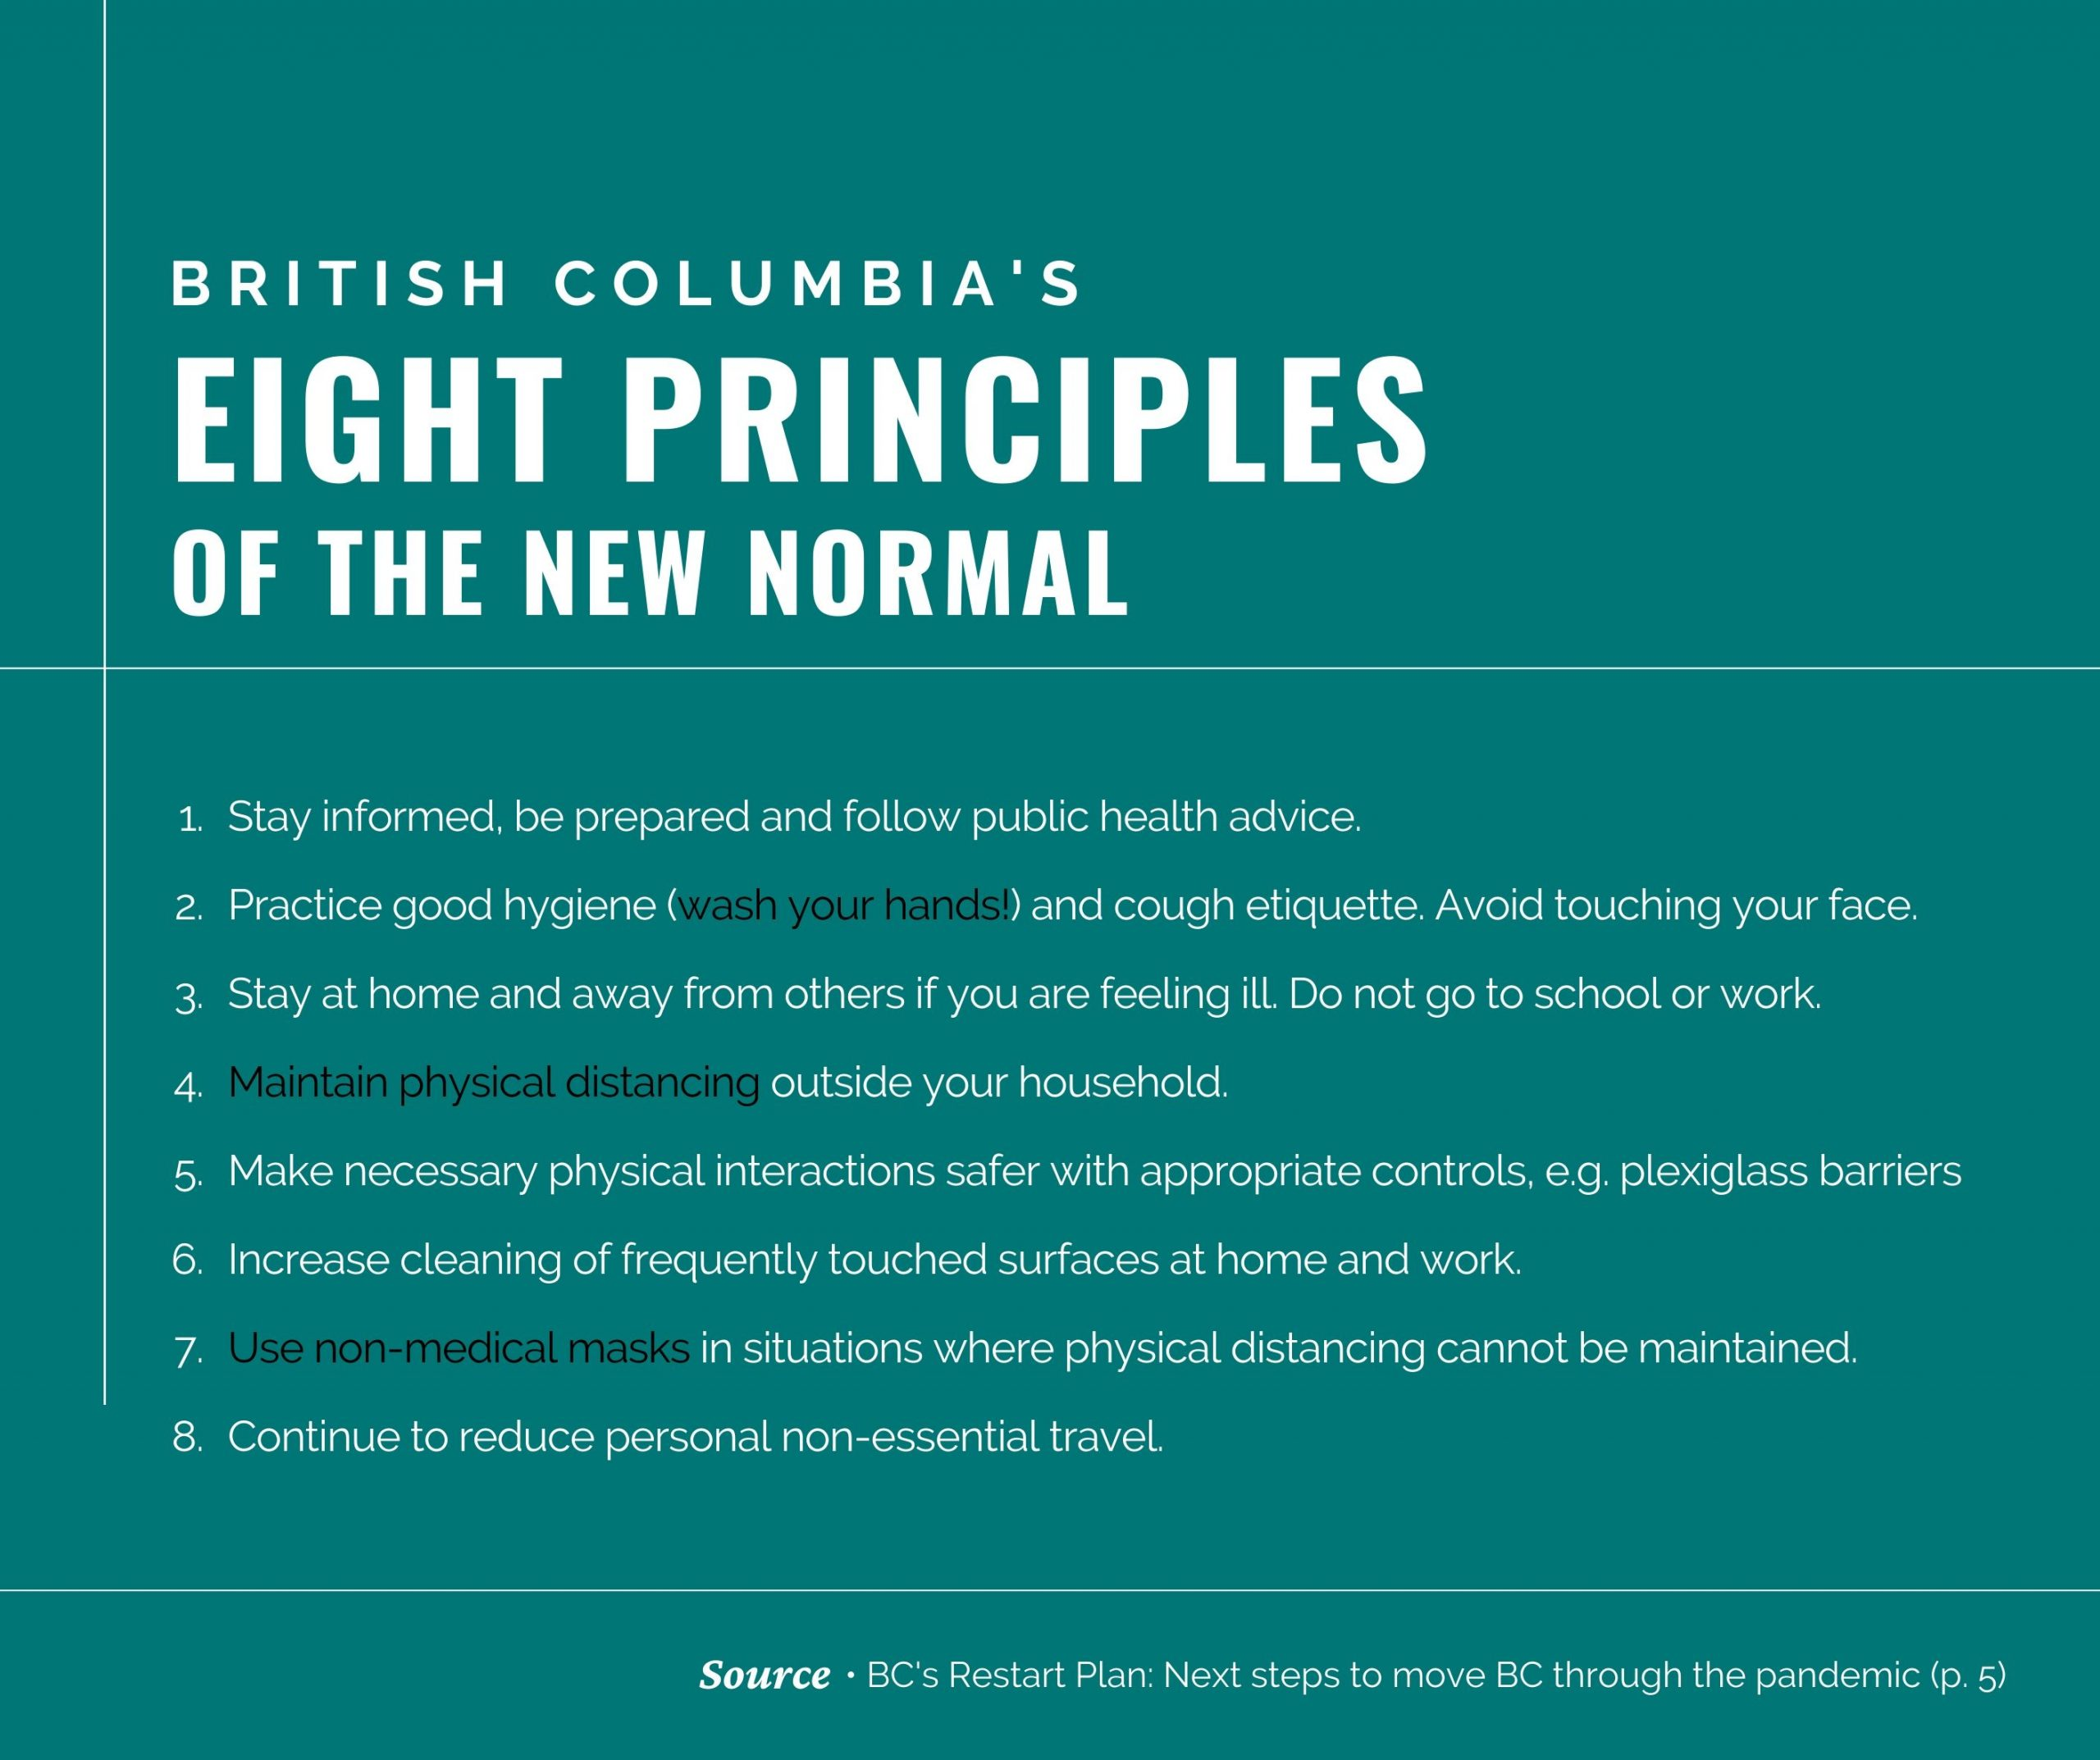 British Columbia's 8 Principles of the new normal during COVID-19